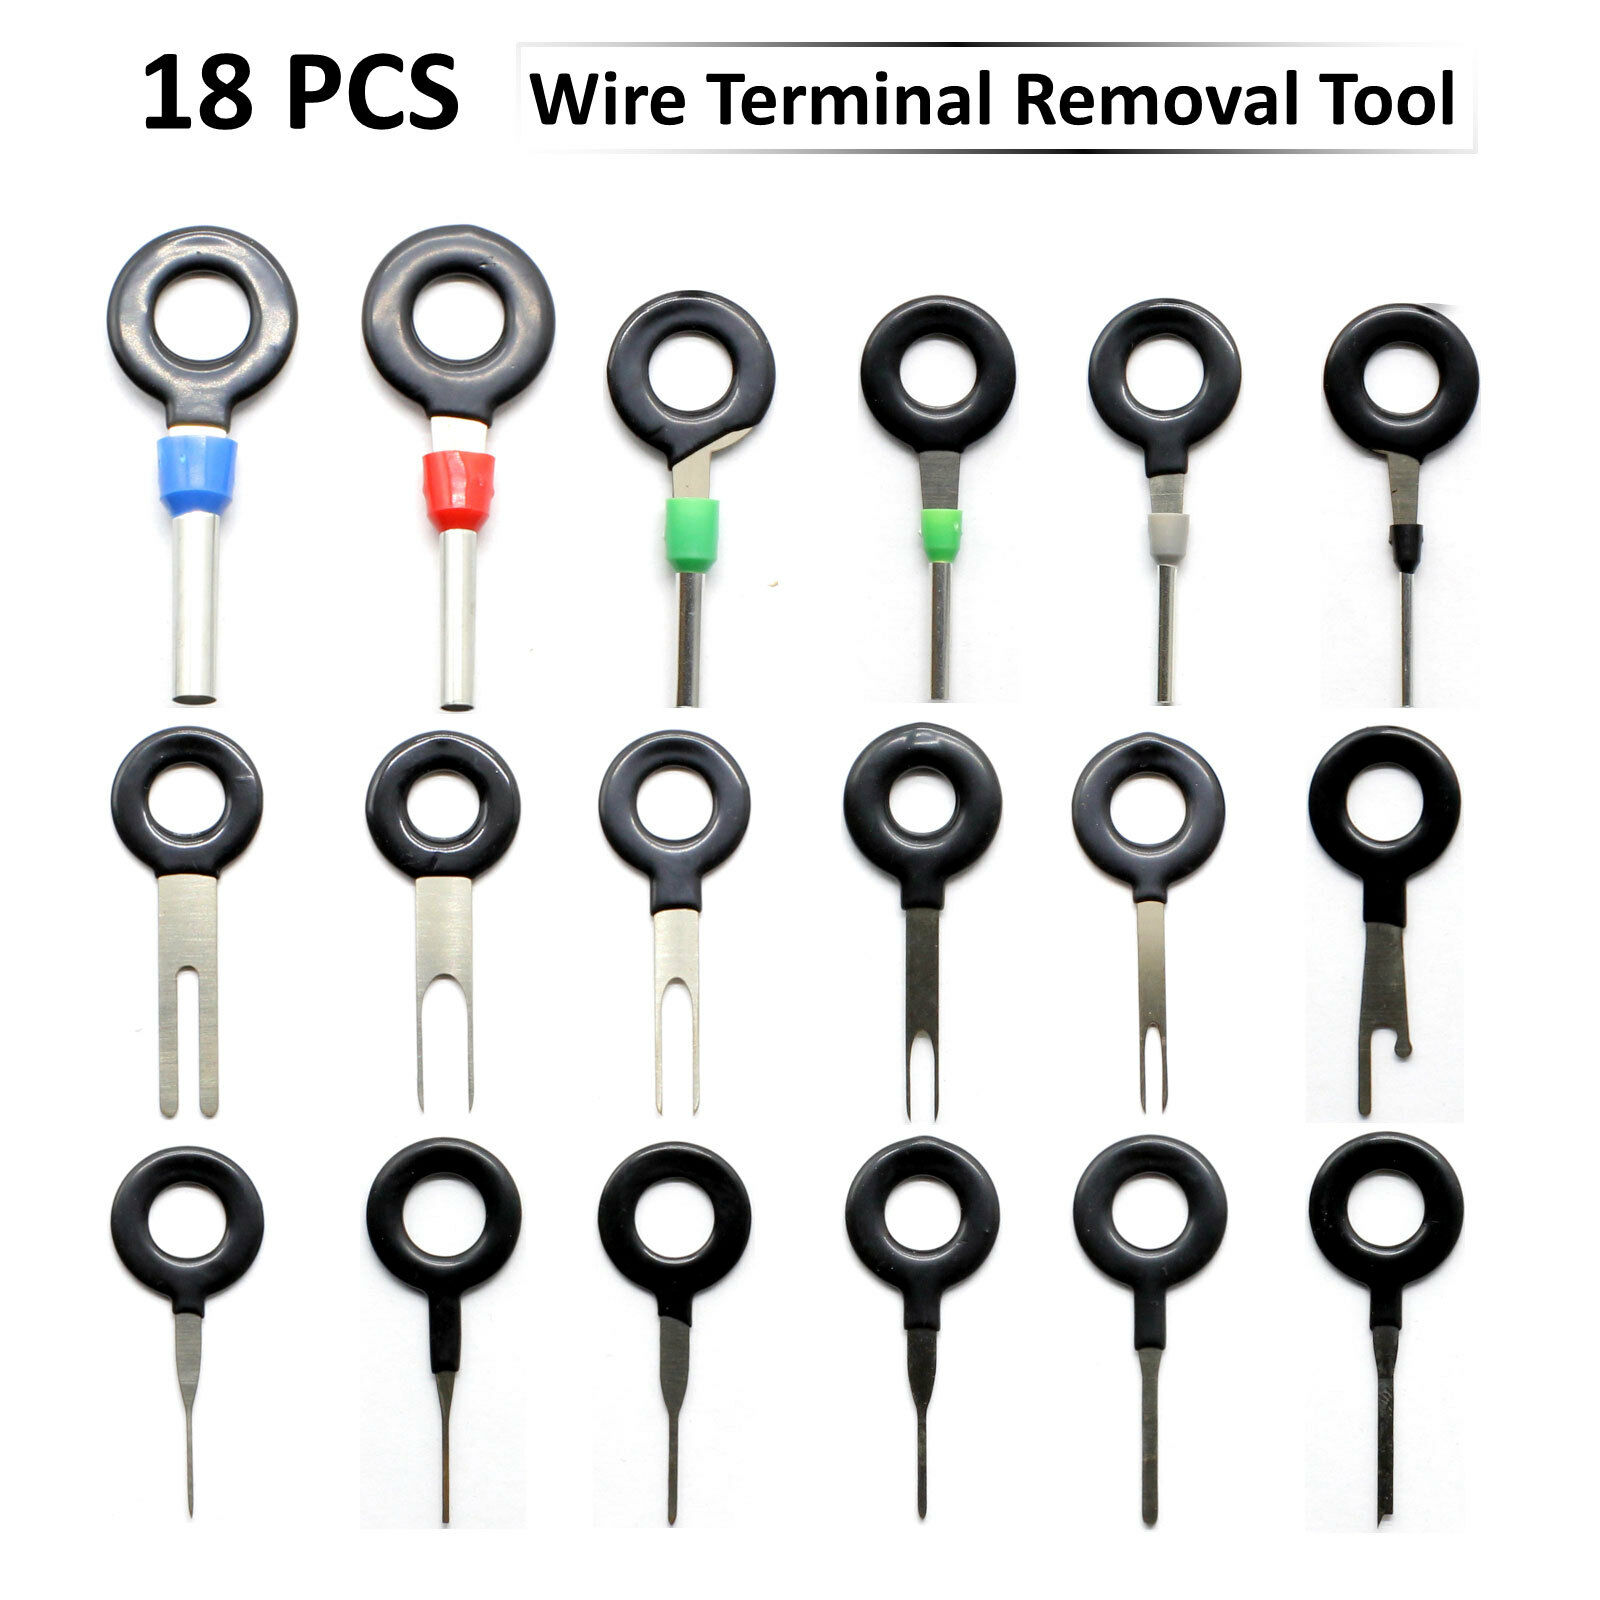 18 Pcs Wire Terminal Removal Tool Car Electrical Wiring